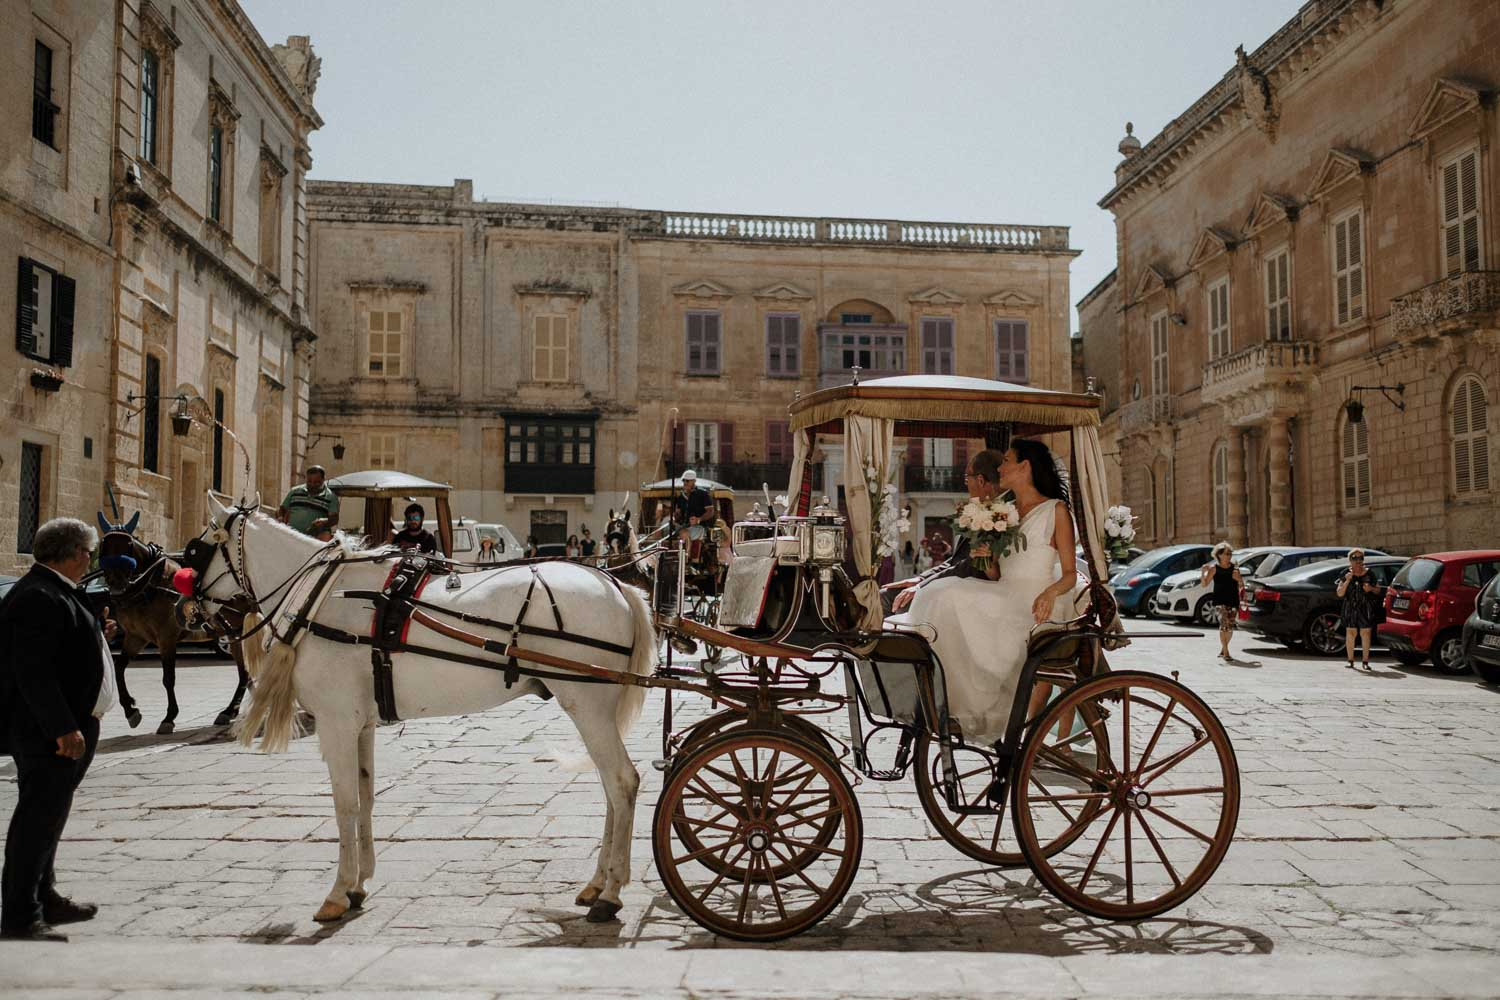 Malta Mdina Destination Wedding Photographer Villa Mdina LozzyRichard Stuart Dudleston Photography 45 1